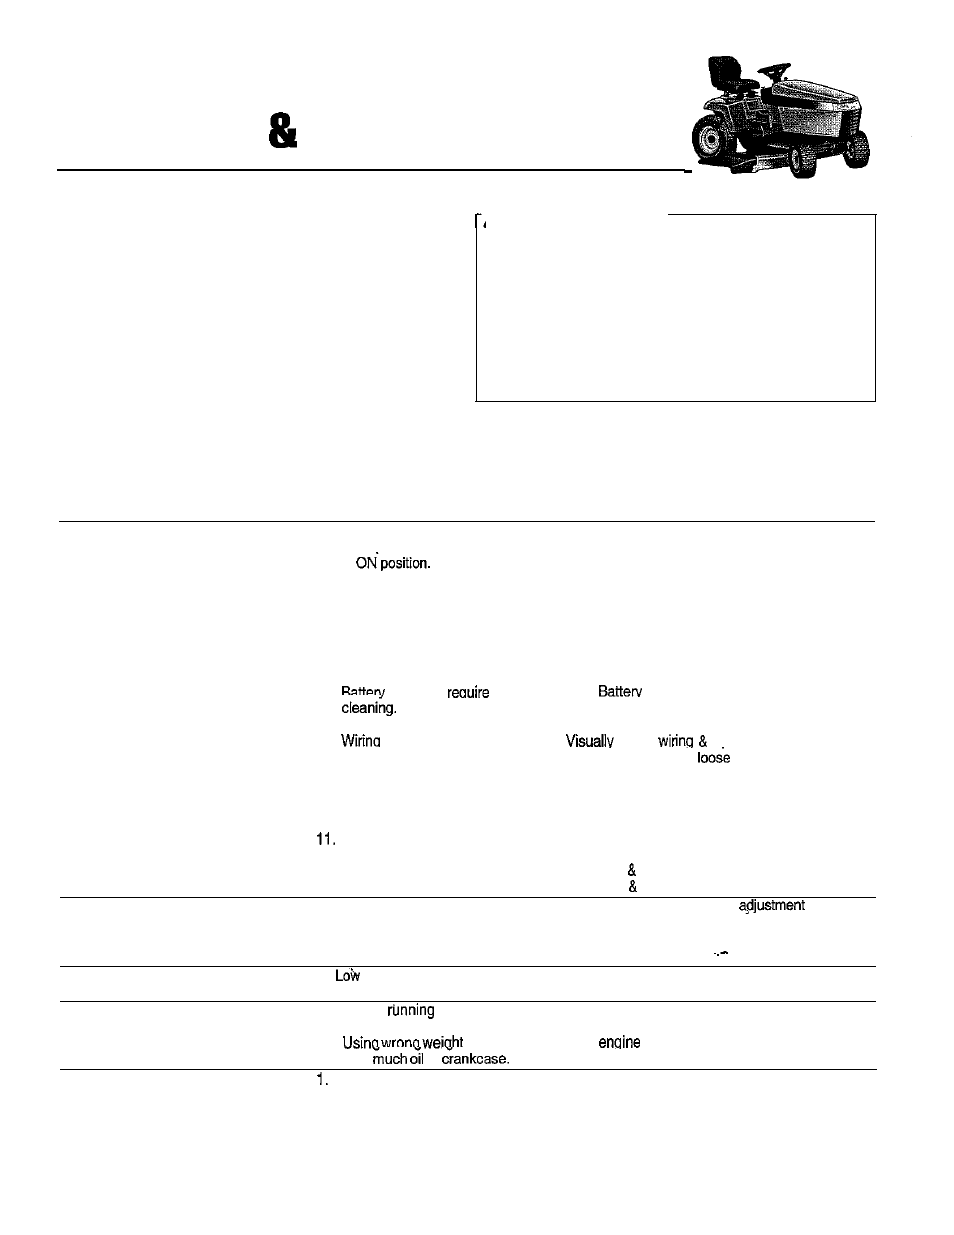 hight resolution of troubleshooting adjustment service troubleshooting troubleshooting the tractor simplicity 14hp user manual page 28 50